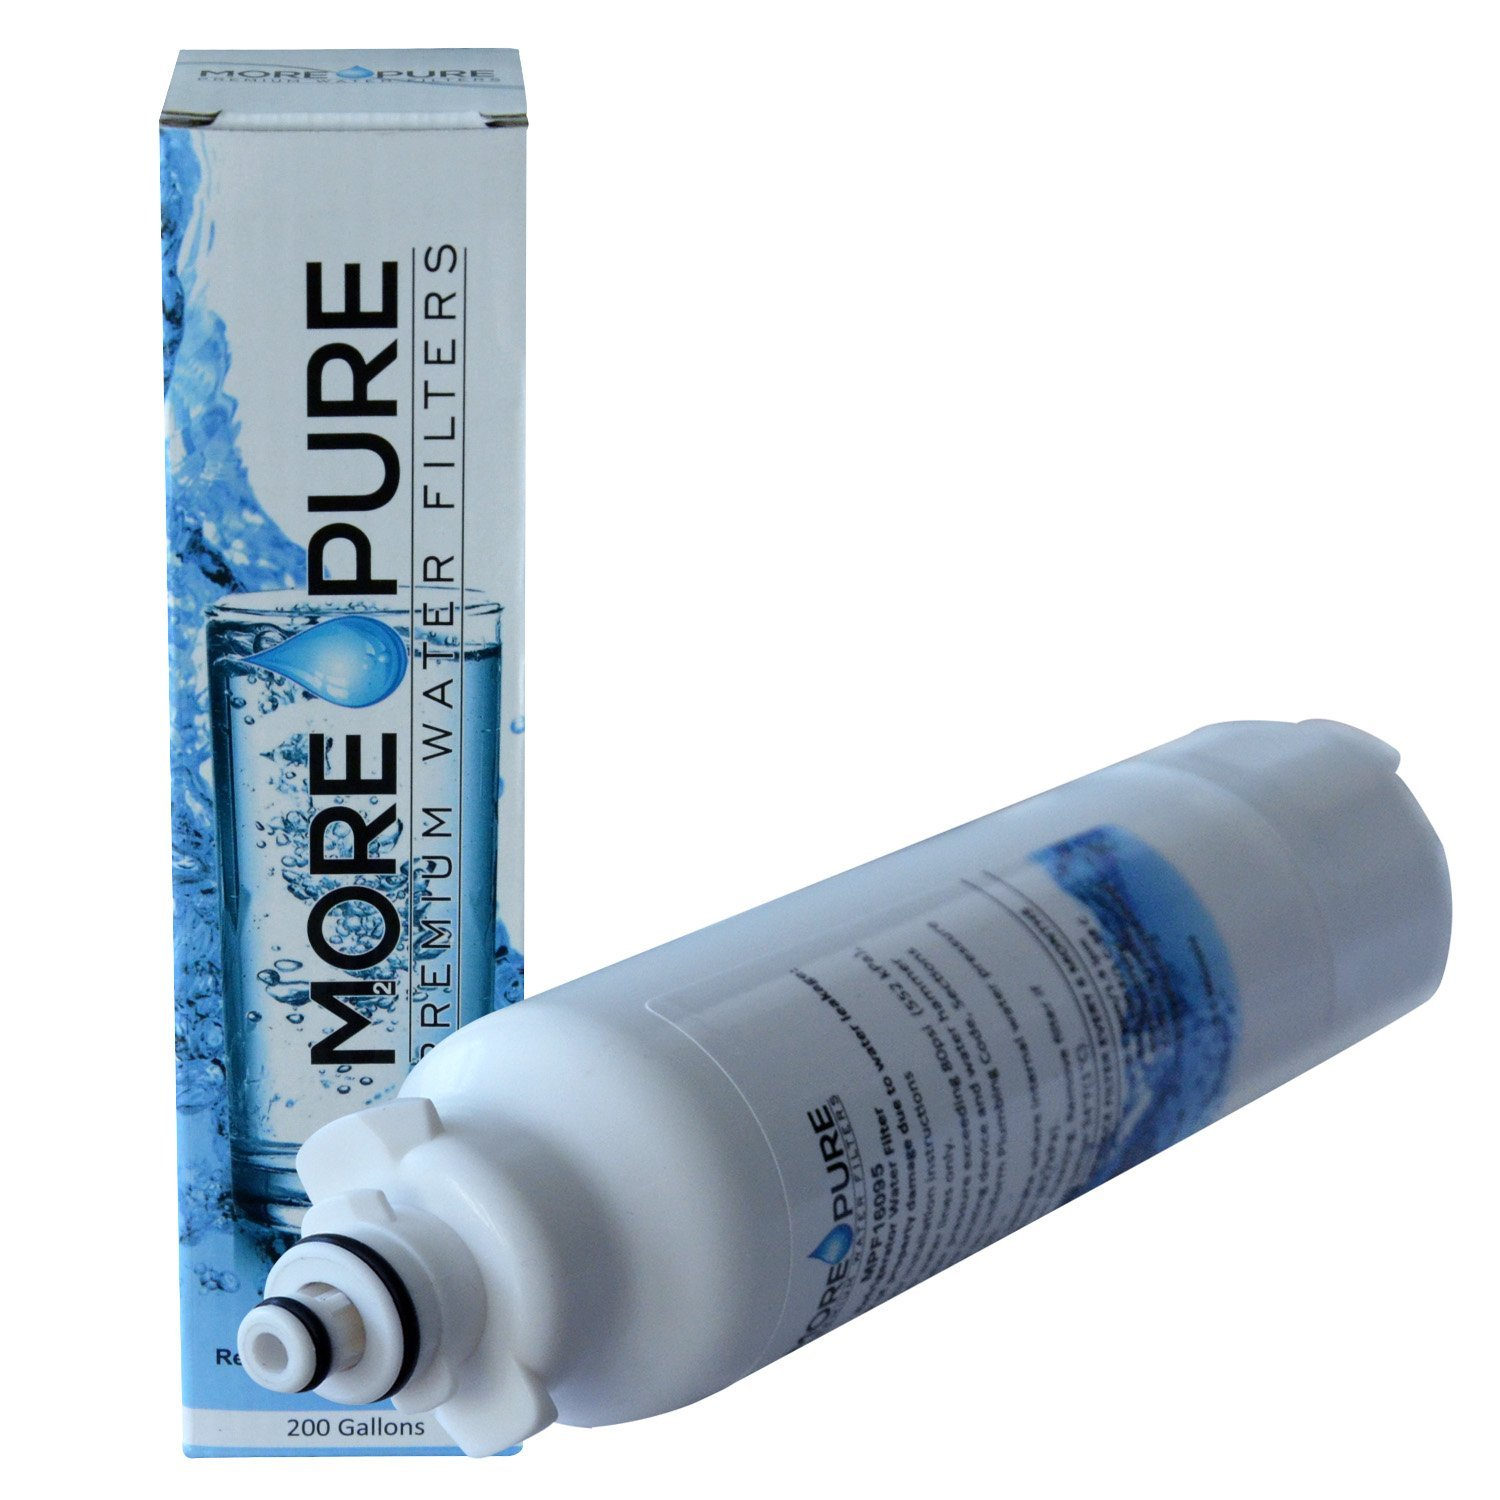 MORE Pure MPF16095 Refrigerator Water Filter Compatible with LG LT800P and Kenmore 46-9460 by MORE Pure Filters (Image #9)